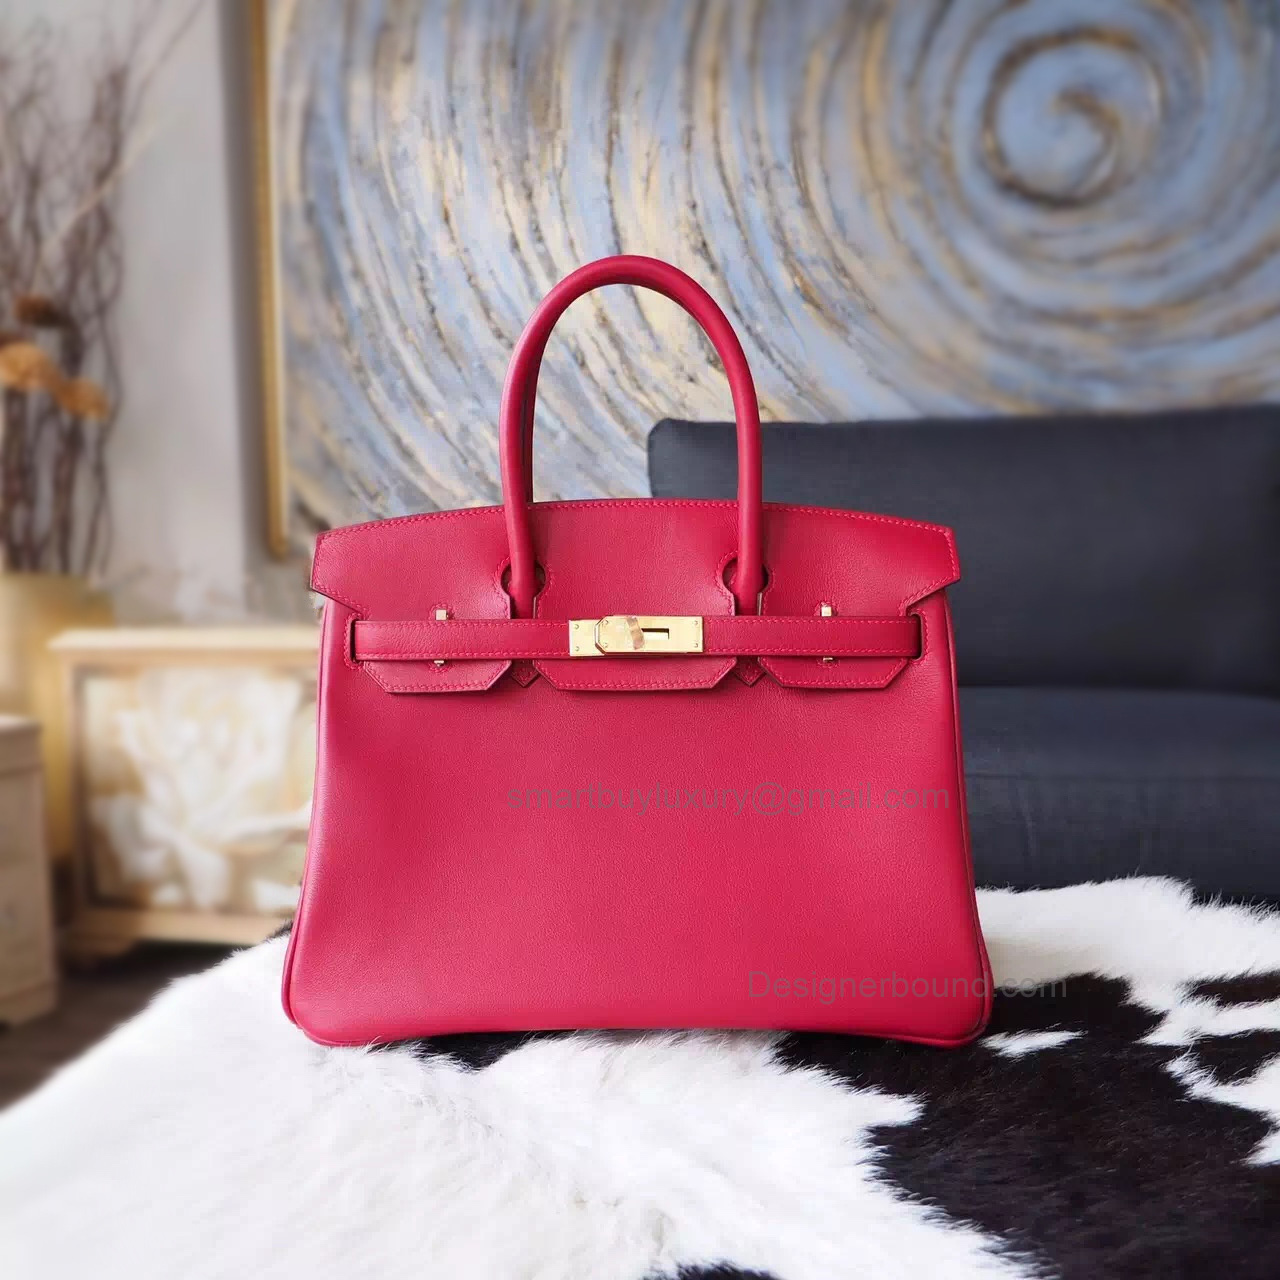 Hand Stitched Hermes Birkin 30 Bag in b5 Ruby Swift Calfskin GHW